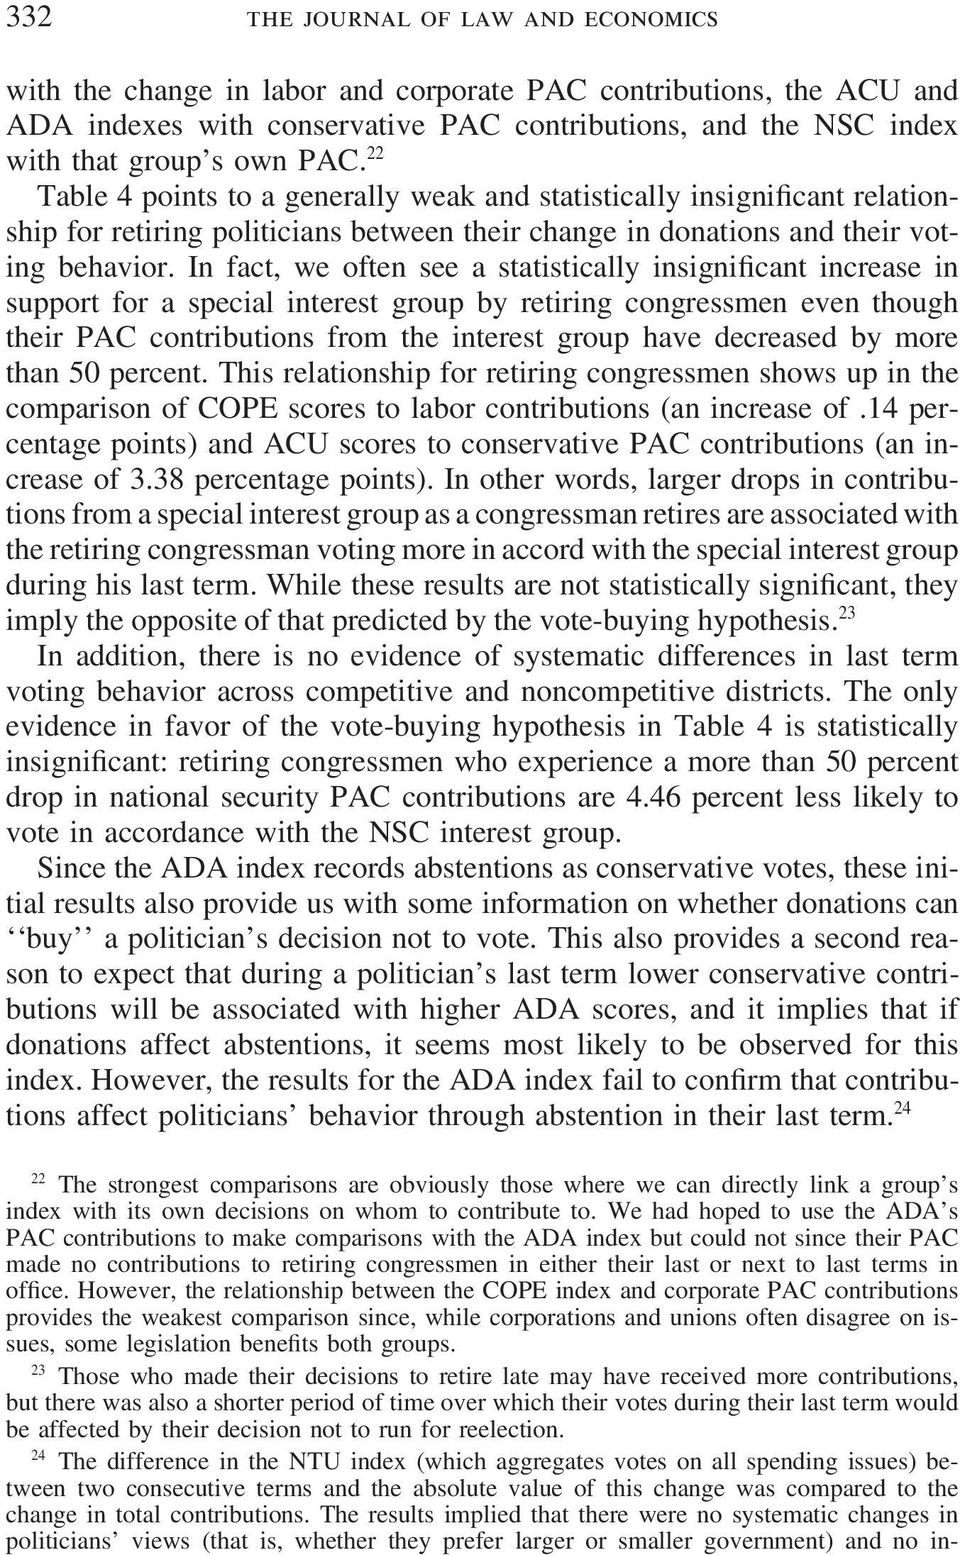 In fact, we often see a statistically insignificant increase in support for a special interest group by retiring congressmen even though their PAC contributions from the interest group have decreased